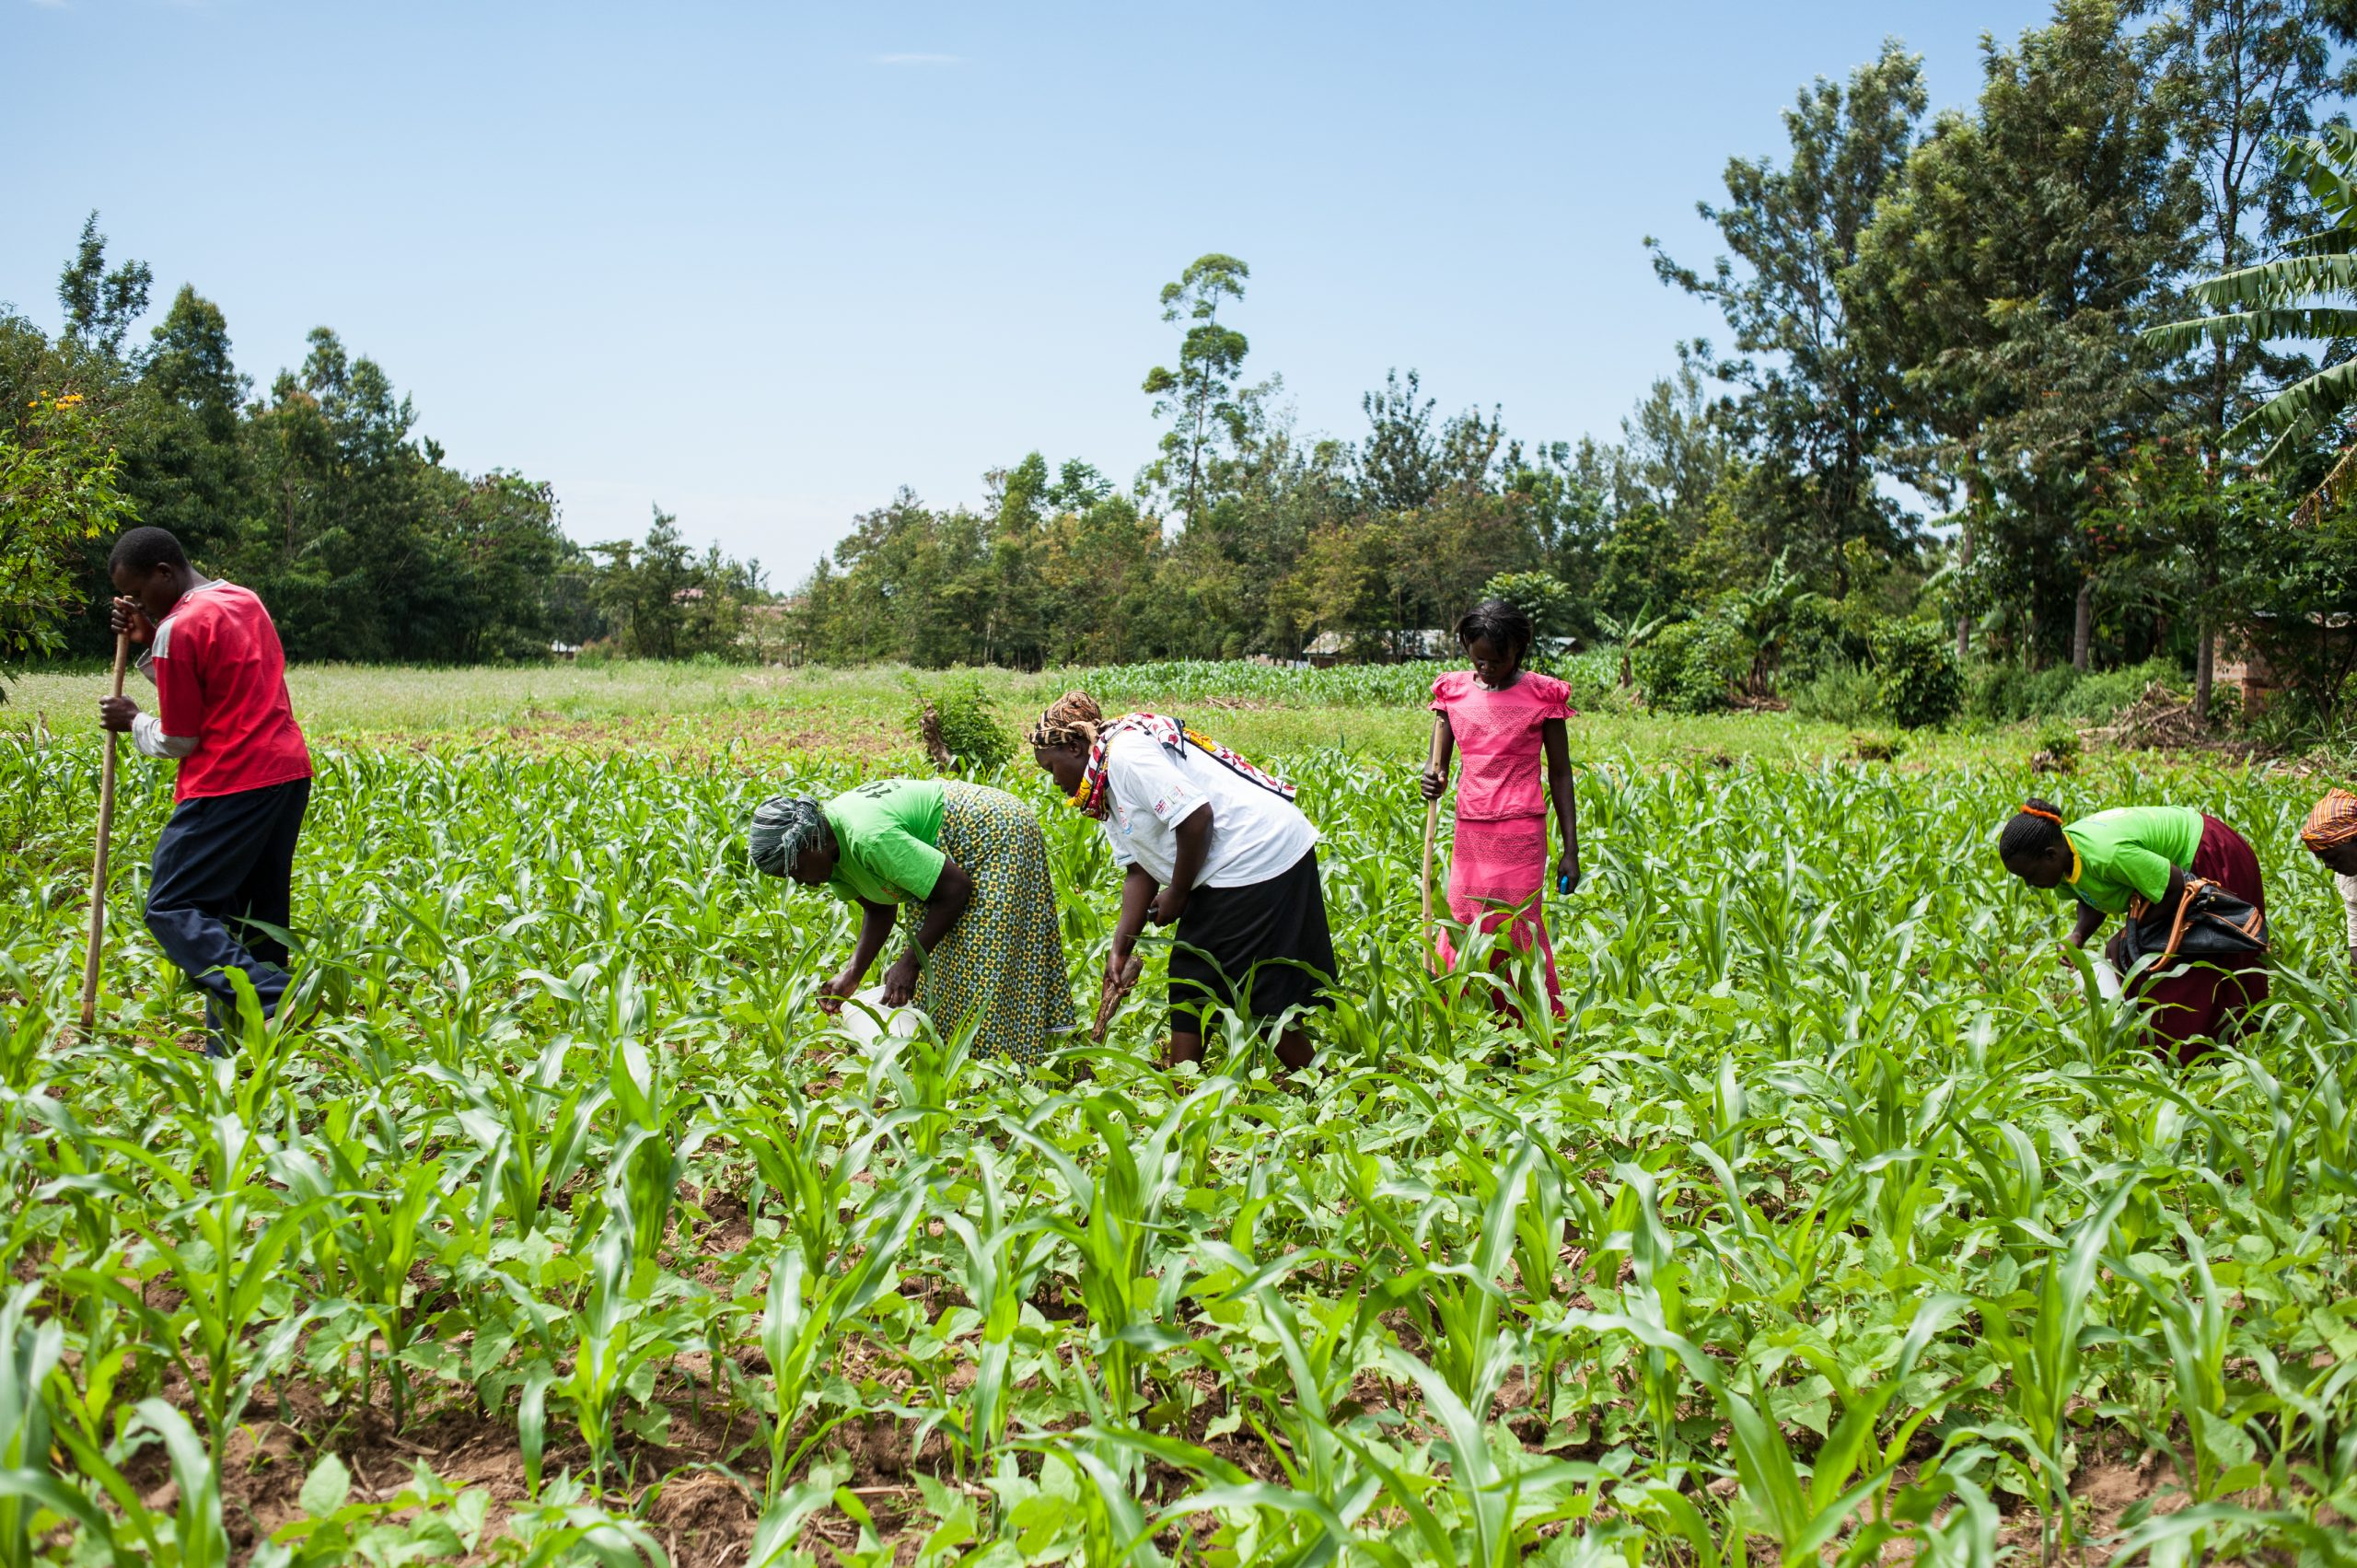 Going far, together: Breaking silos to unlock smallholder finance